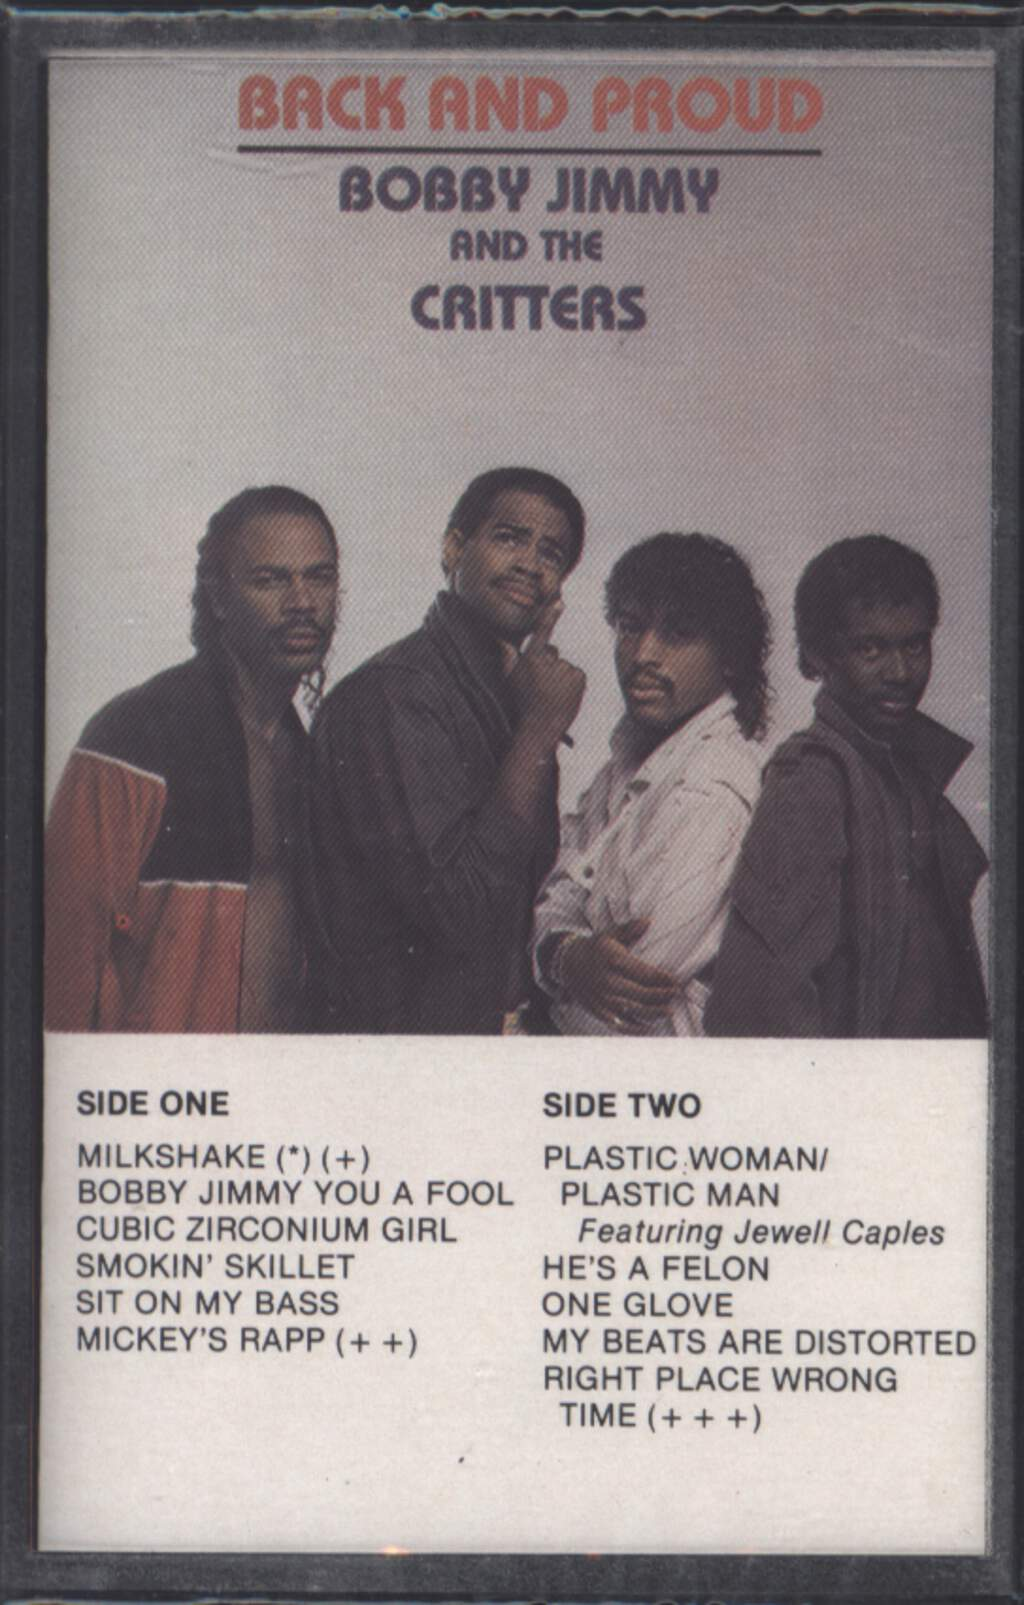 Bobby Jimmy and the Critters: Back And Proud, Tape